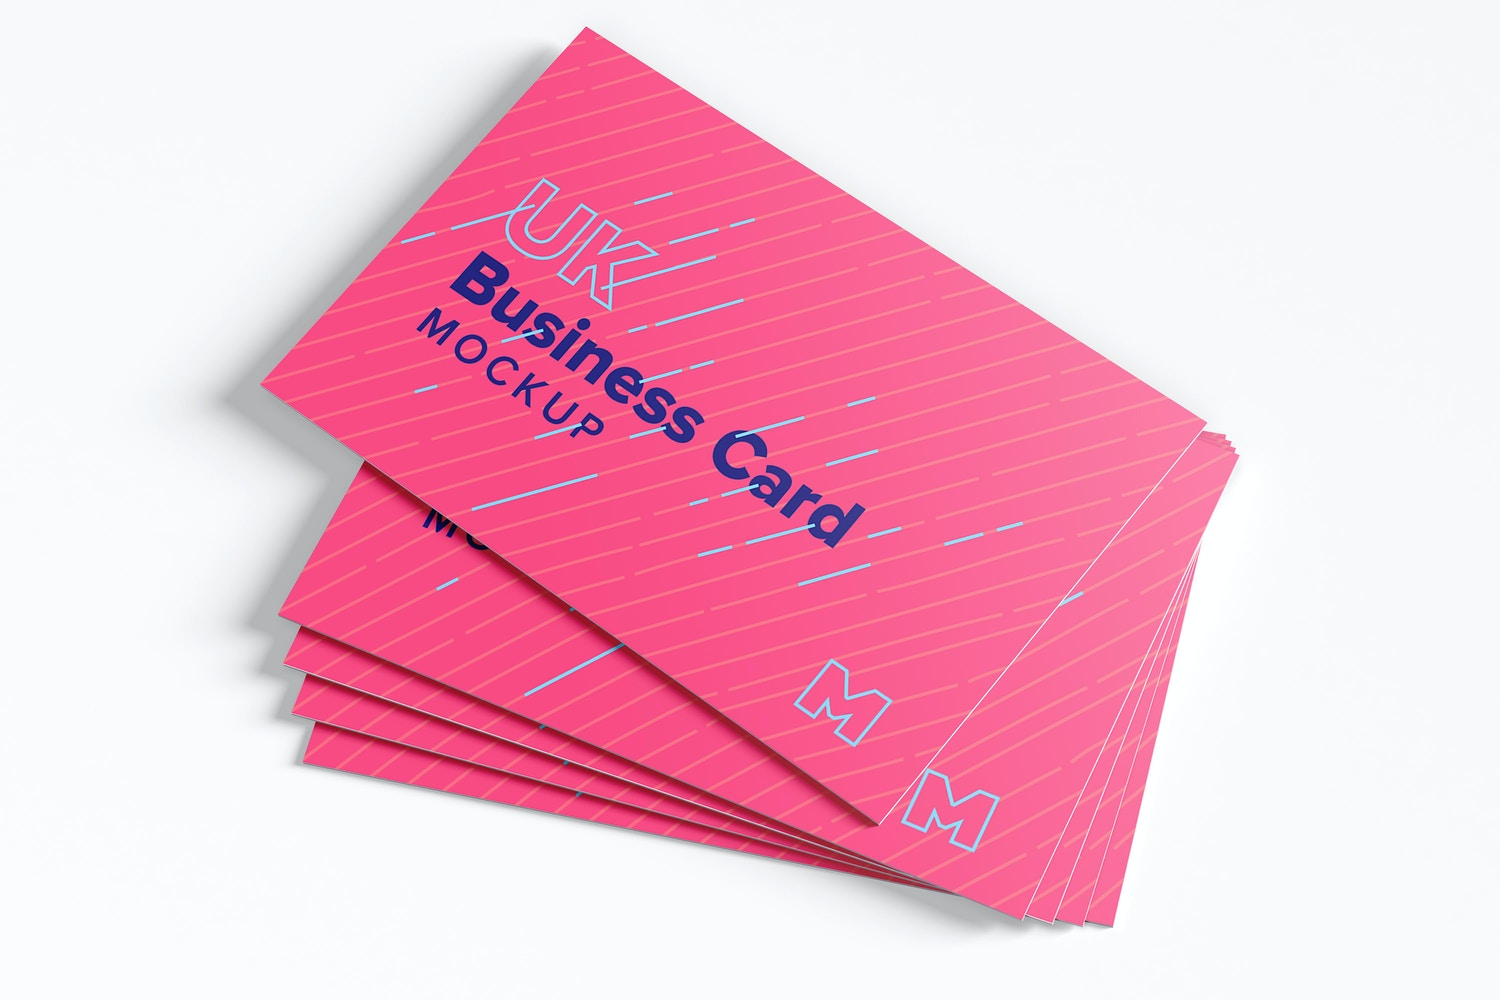 UK Business Cards Mockup 02 by Original Mockups on Original Mockups